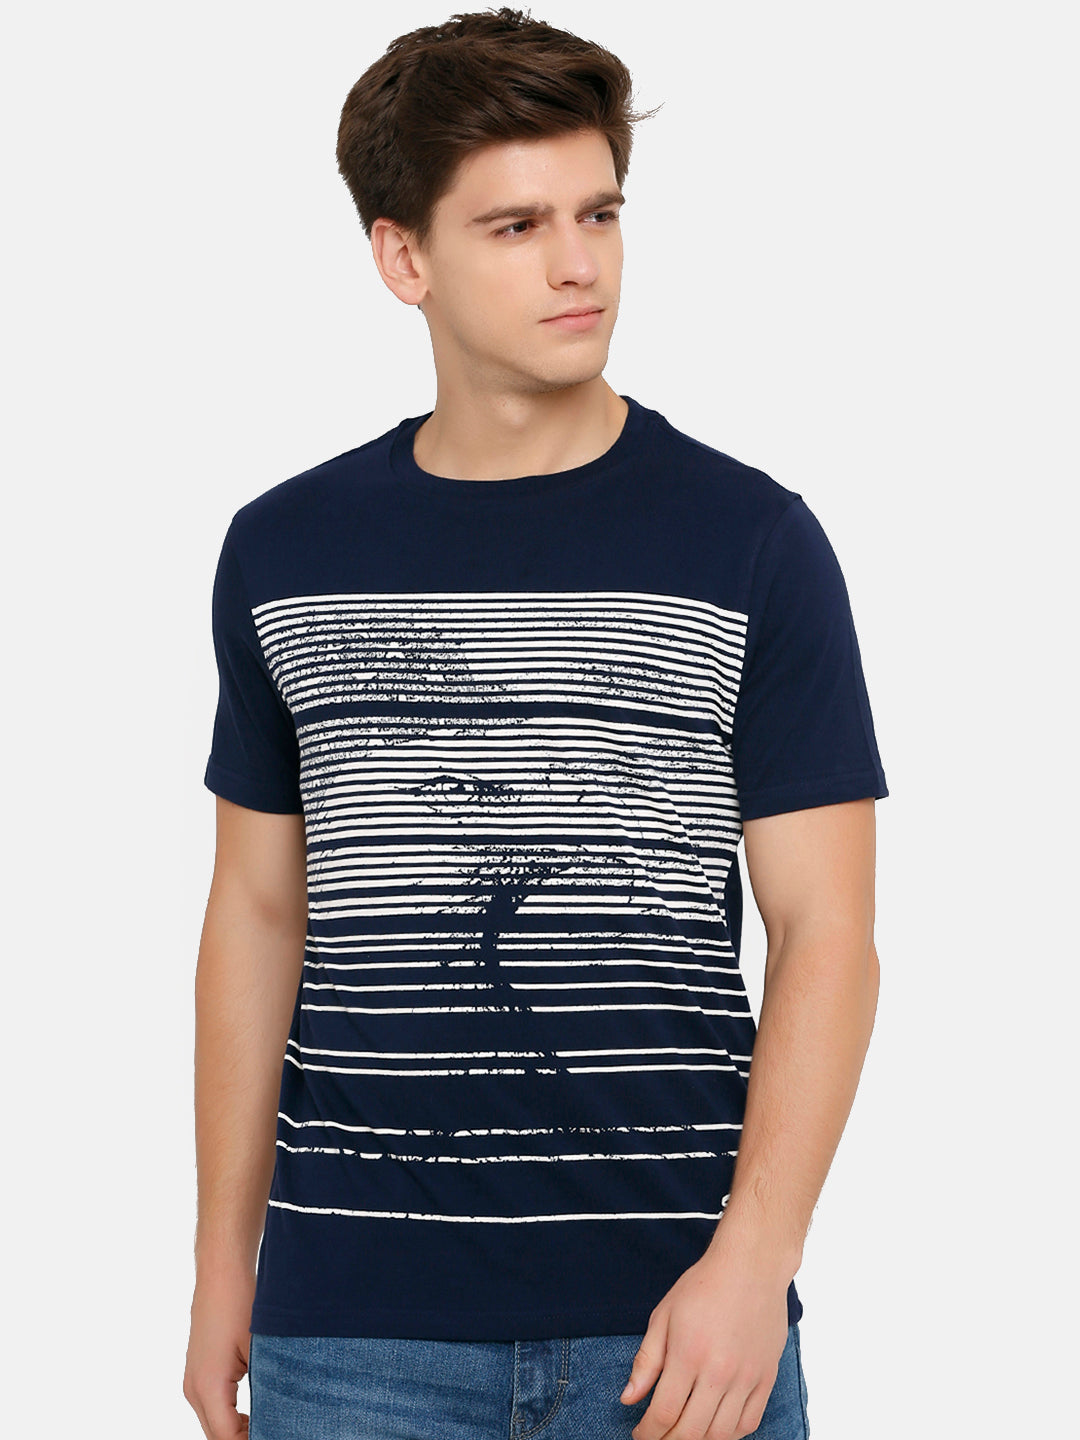 Men's Navy Printed Crew Neck T-Shirt